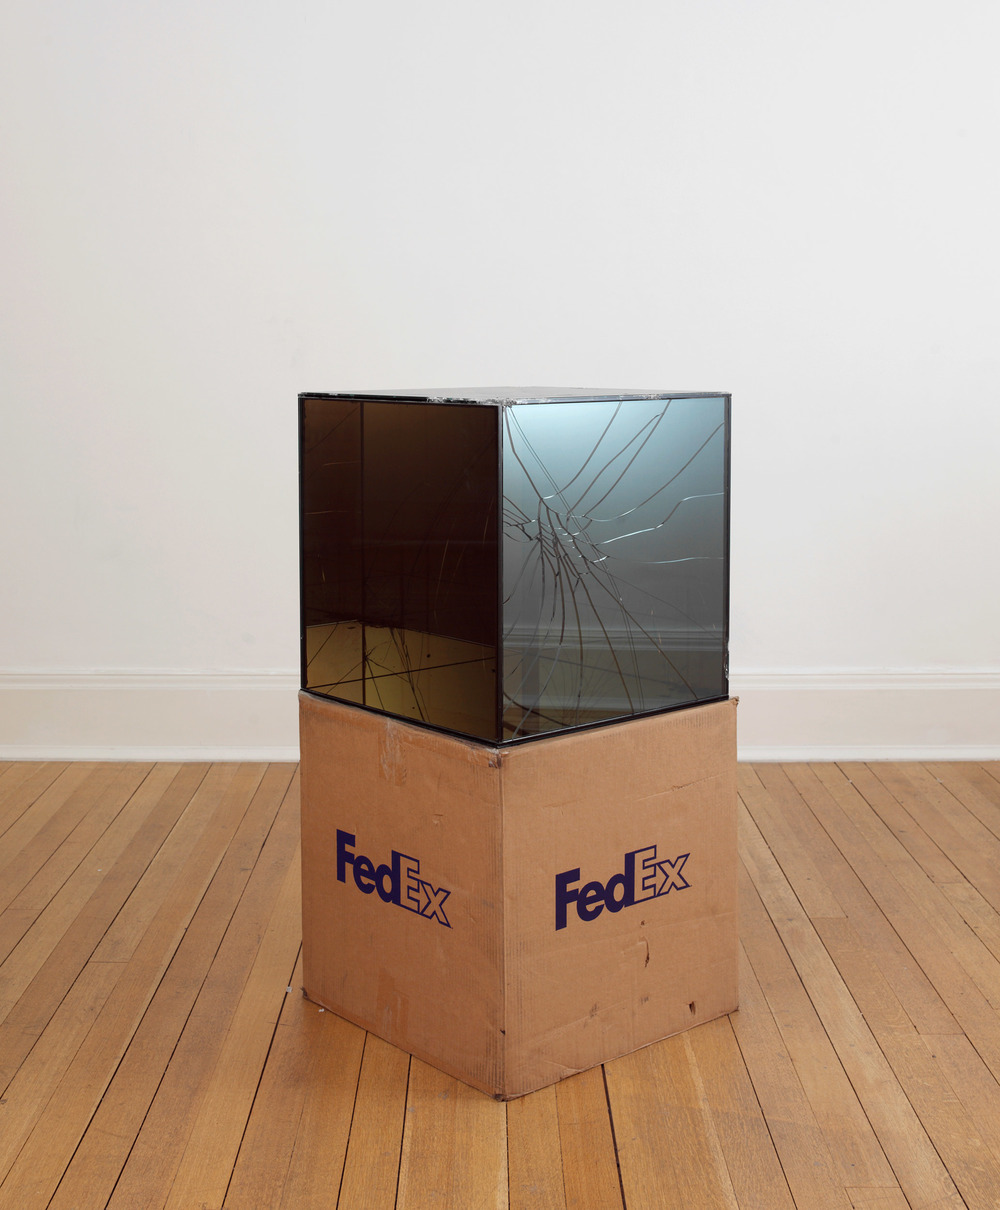 FedEx Large Kraft Box 2008 FEDEX 330510 REV 6/08 GP, International Priority, Los Angeles–London trk#868587728072, October 02–05, 2009    2009–   Laminated Mirropane, FedEx shipping box, accrued FedEx shipping and tracking labels, silicone, metal, tape  20 x 20 x 20 inches   FedEx Glass Works, 2007–